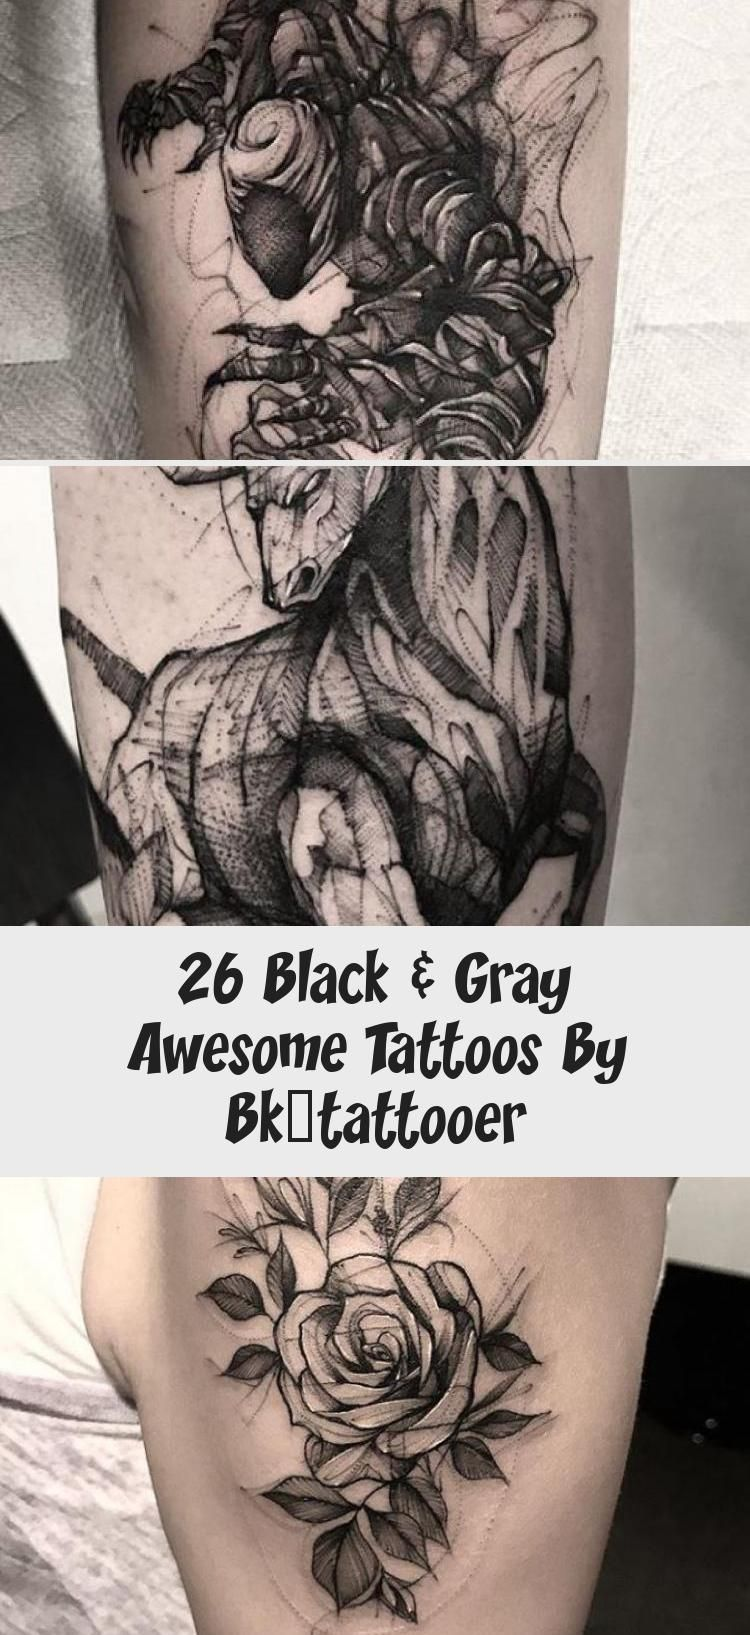 26 Black Gray Awesome Tattoos By Bk Tattooer Blacktattoopontilhismo Blacktat 26 Black Gray Awes Outer Forearm Tattoo Cool Tattoos All Black Tattoos